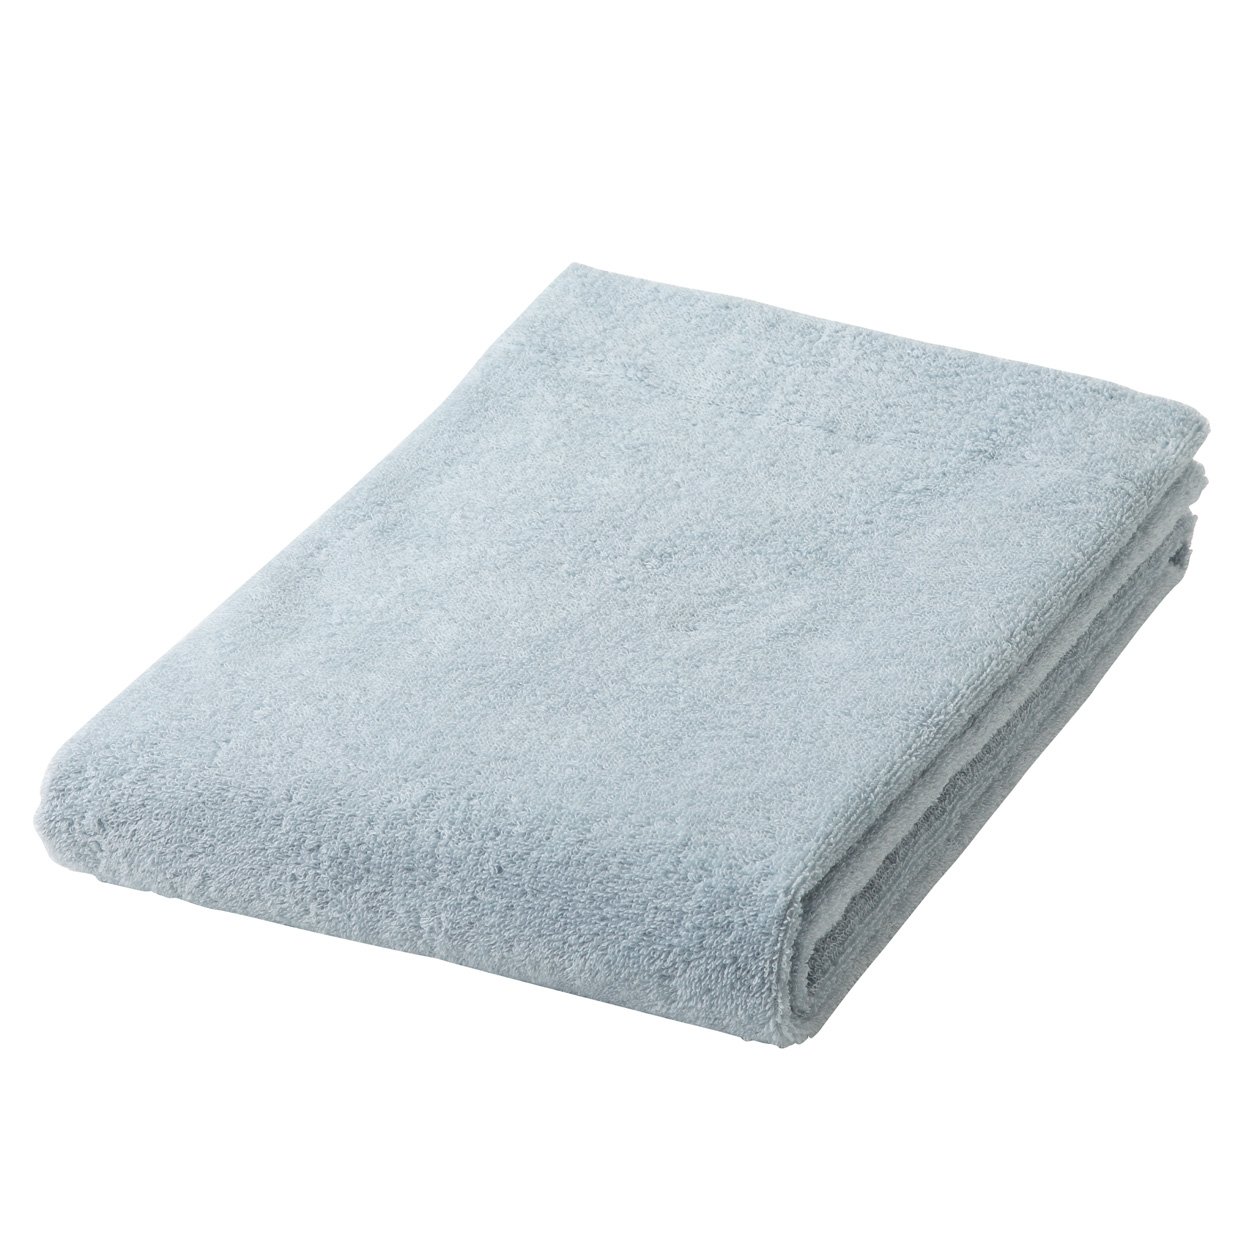 light blue thin Small Bathtowel